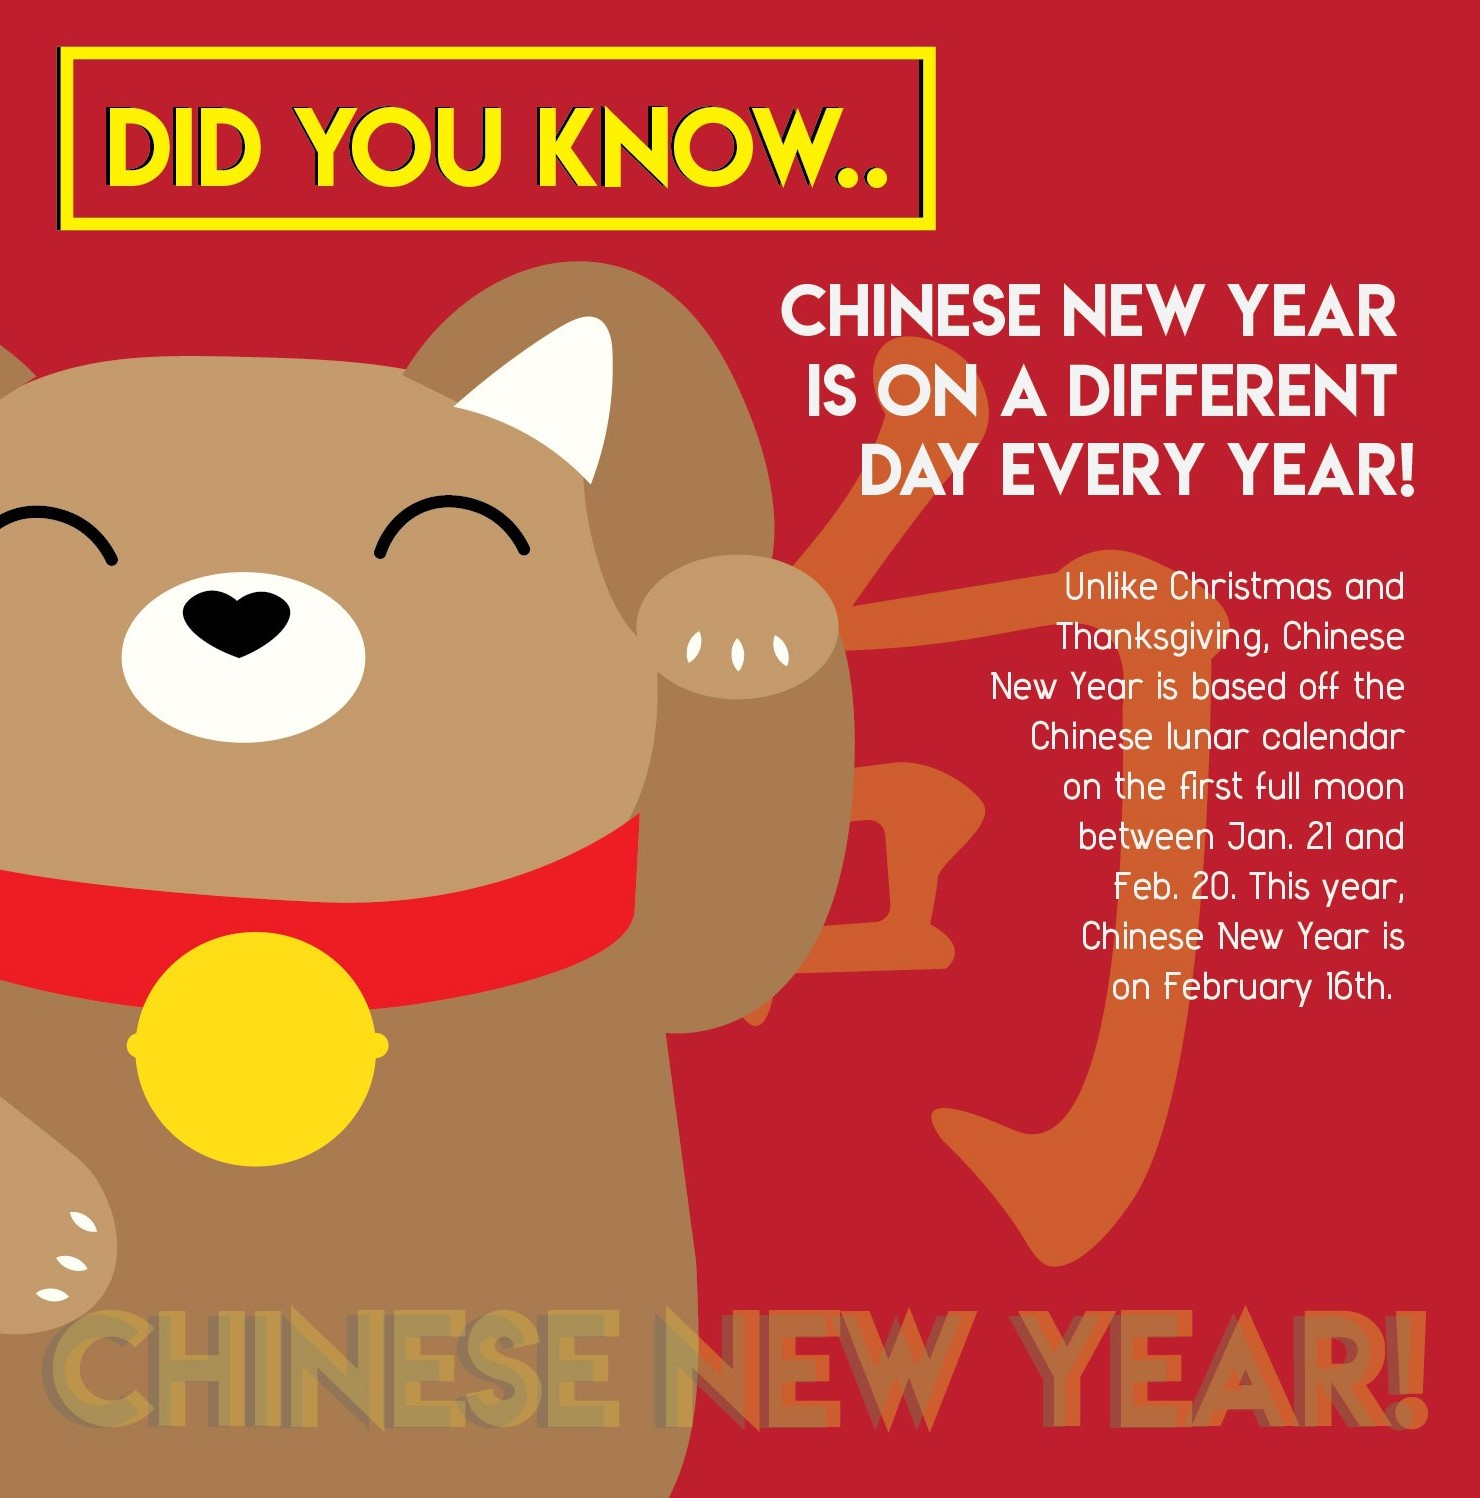 Chinese New Year Fun Fact #1